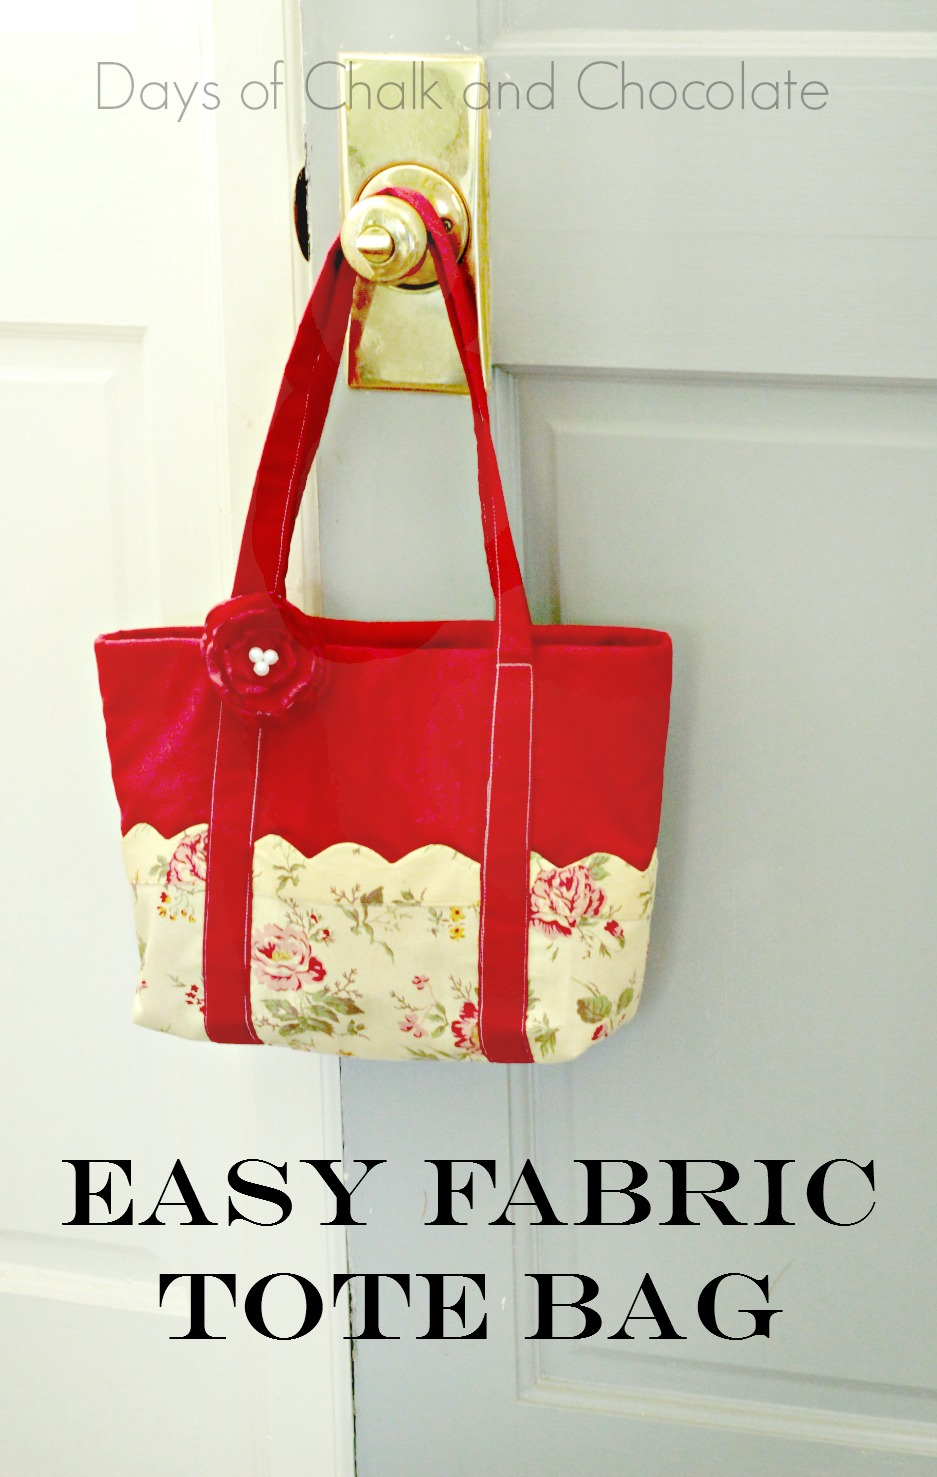 Easy Sew Fabric Tote Bag | Days of Chalk and Chocolate